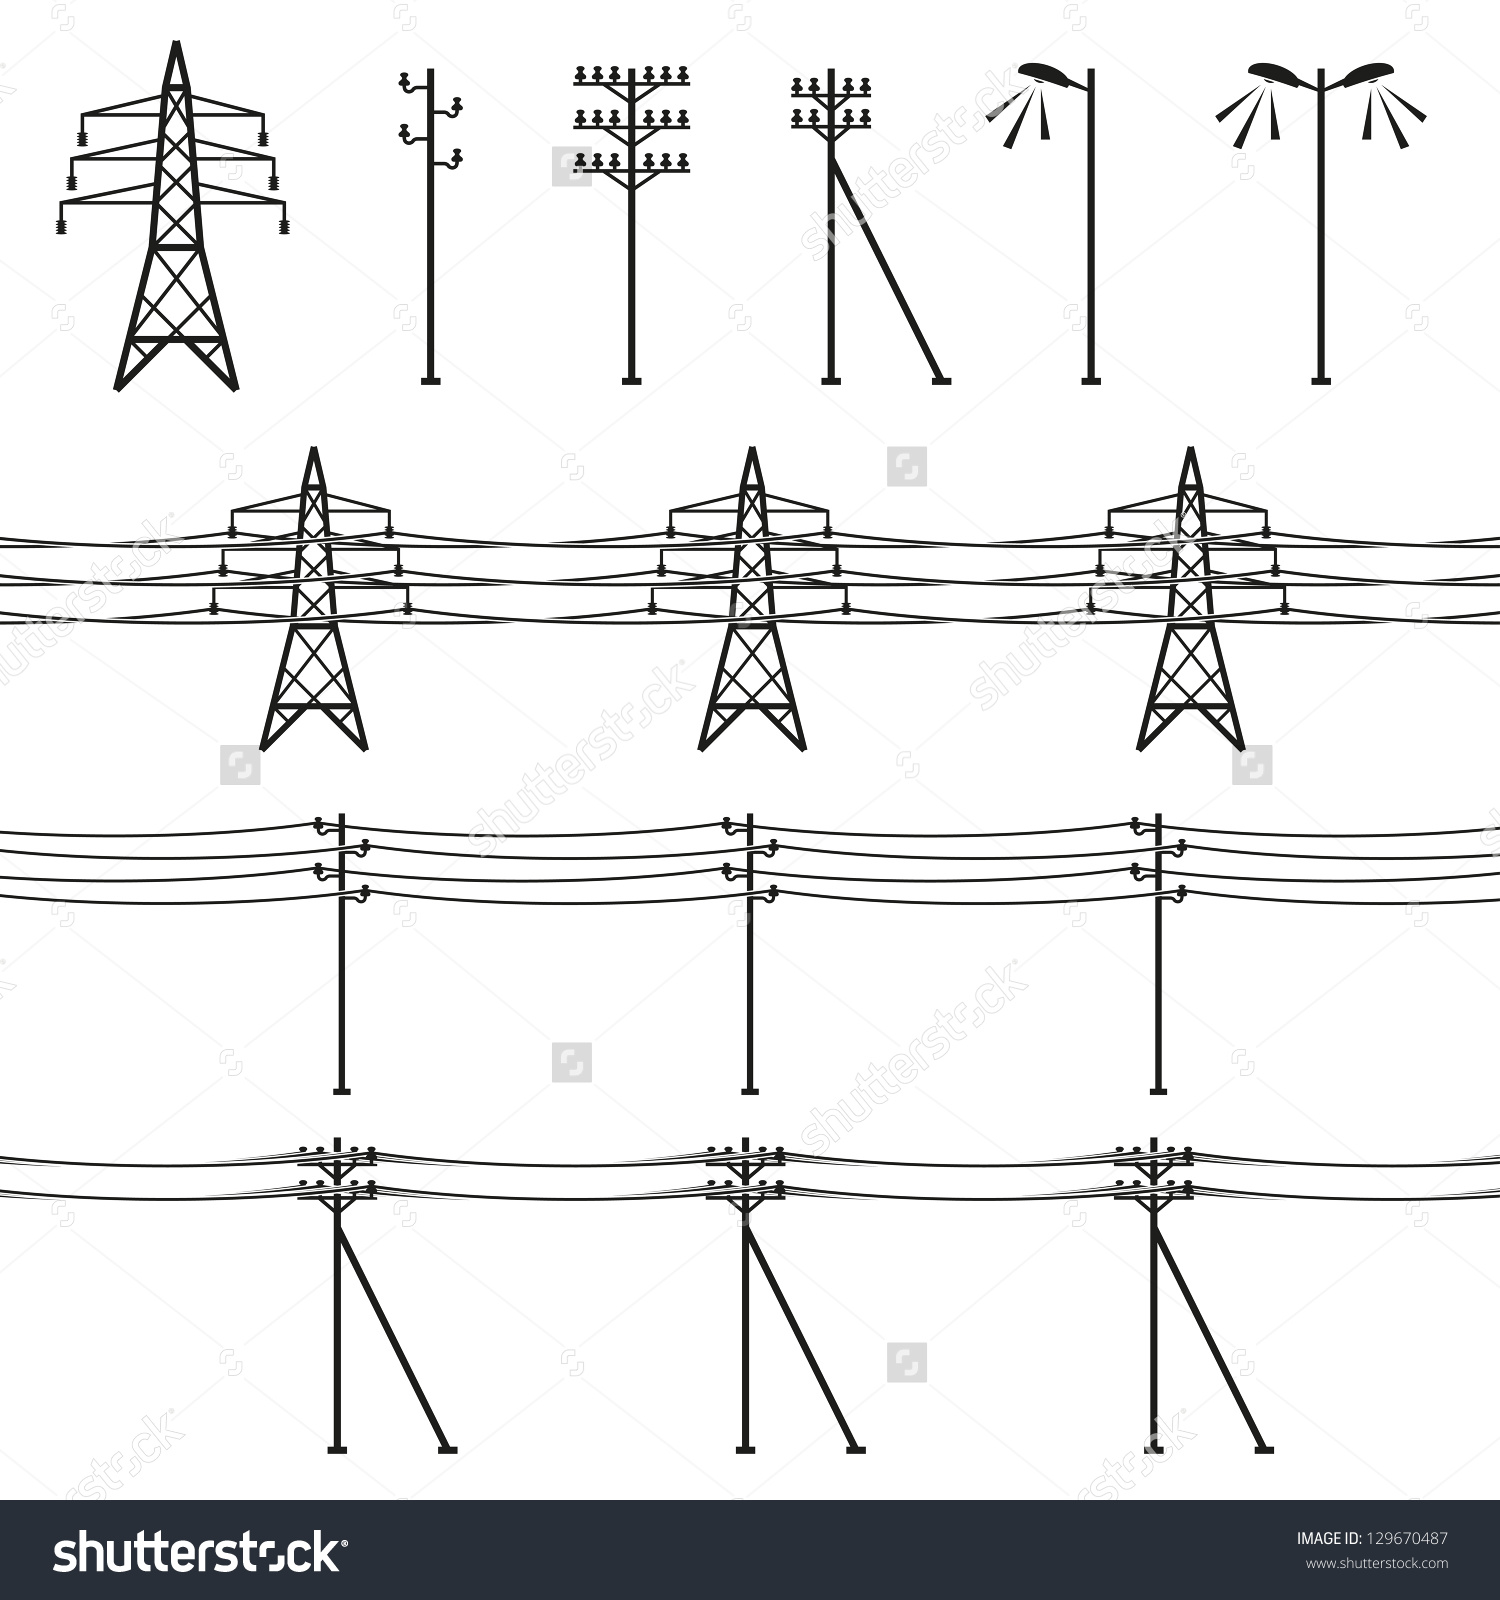 High Voltage Power Lines Stock Vector 129670487.